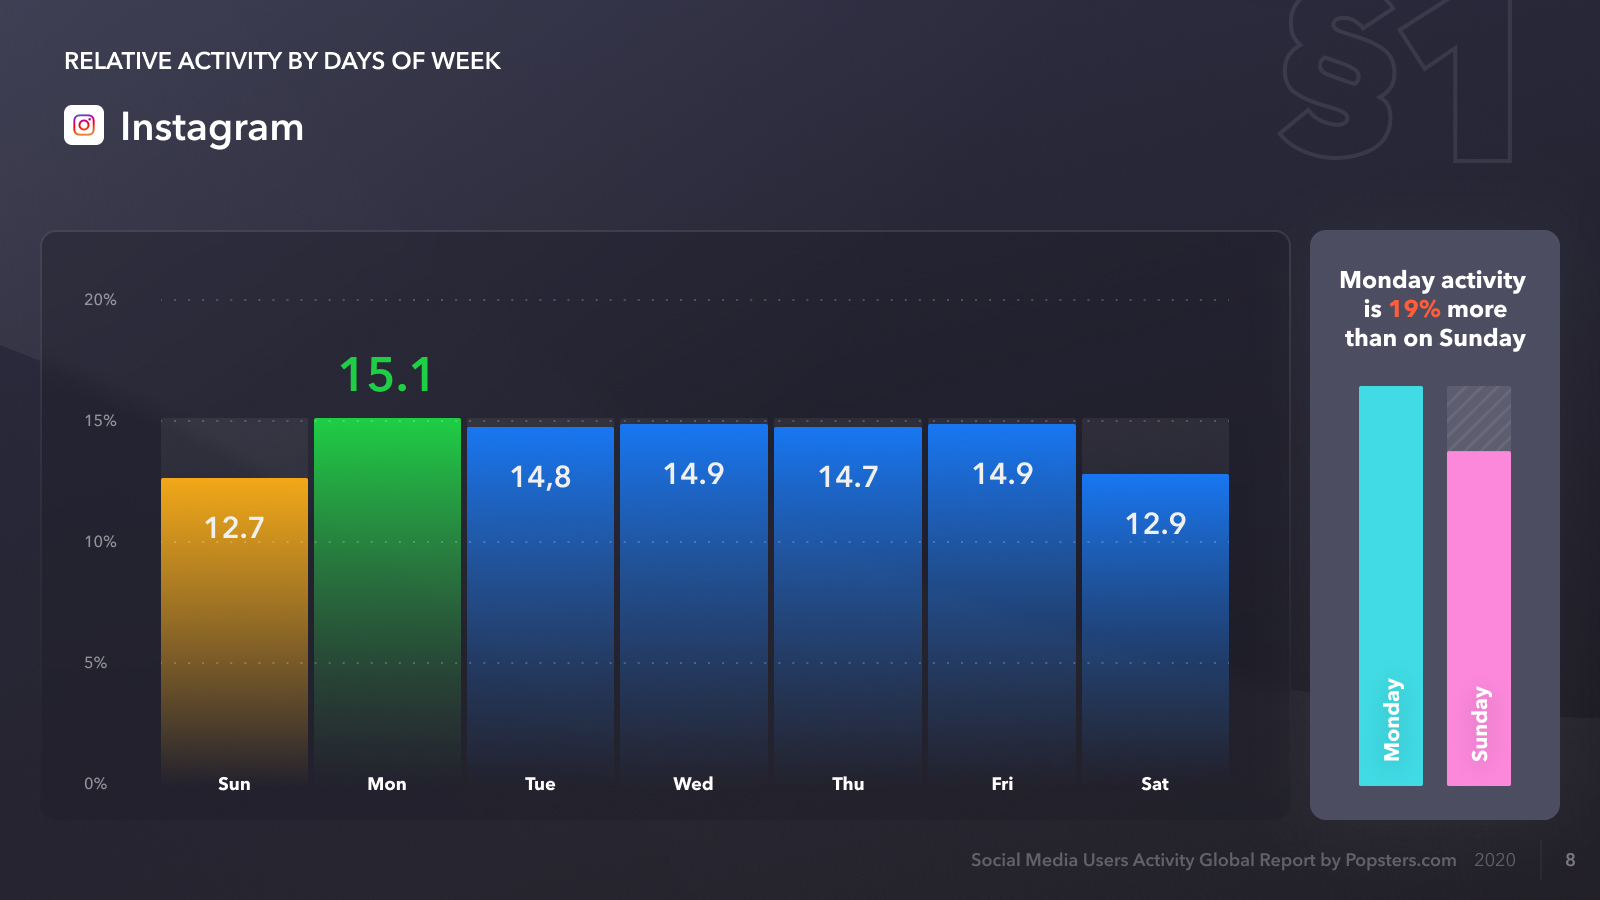 Relative activity on Instagram by days of week, data for 2020